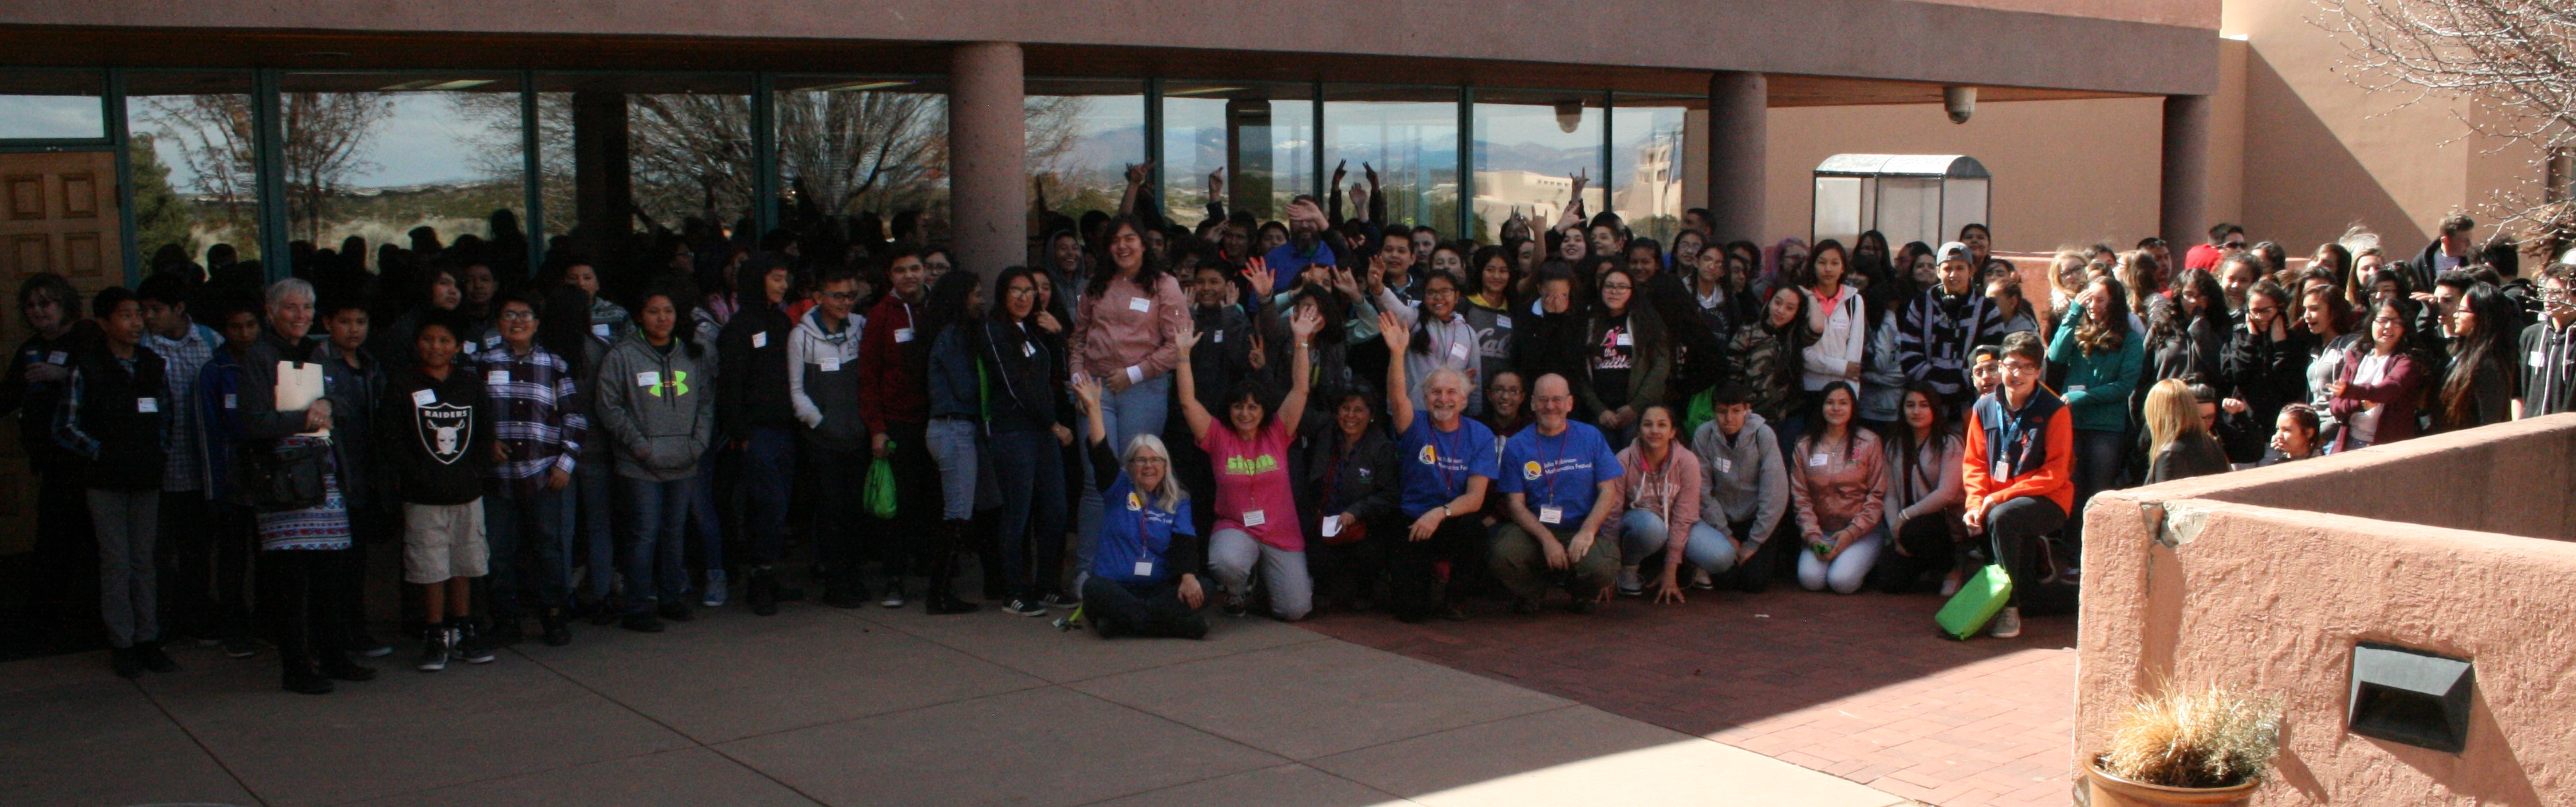 JRMF-Santa Fe attendees and organizers